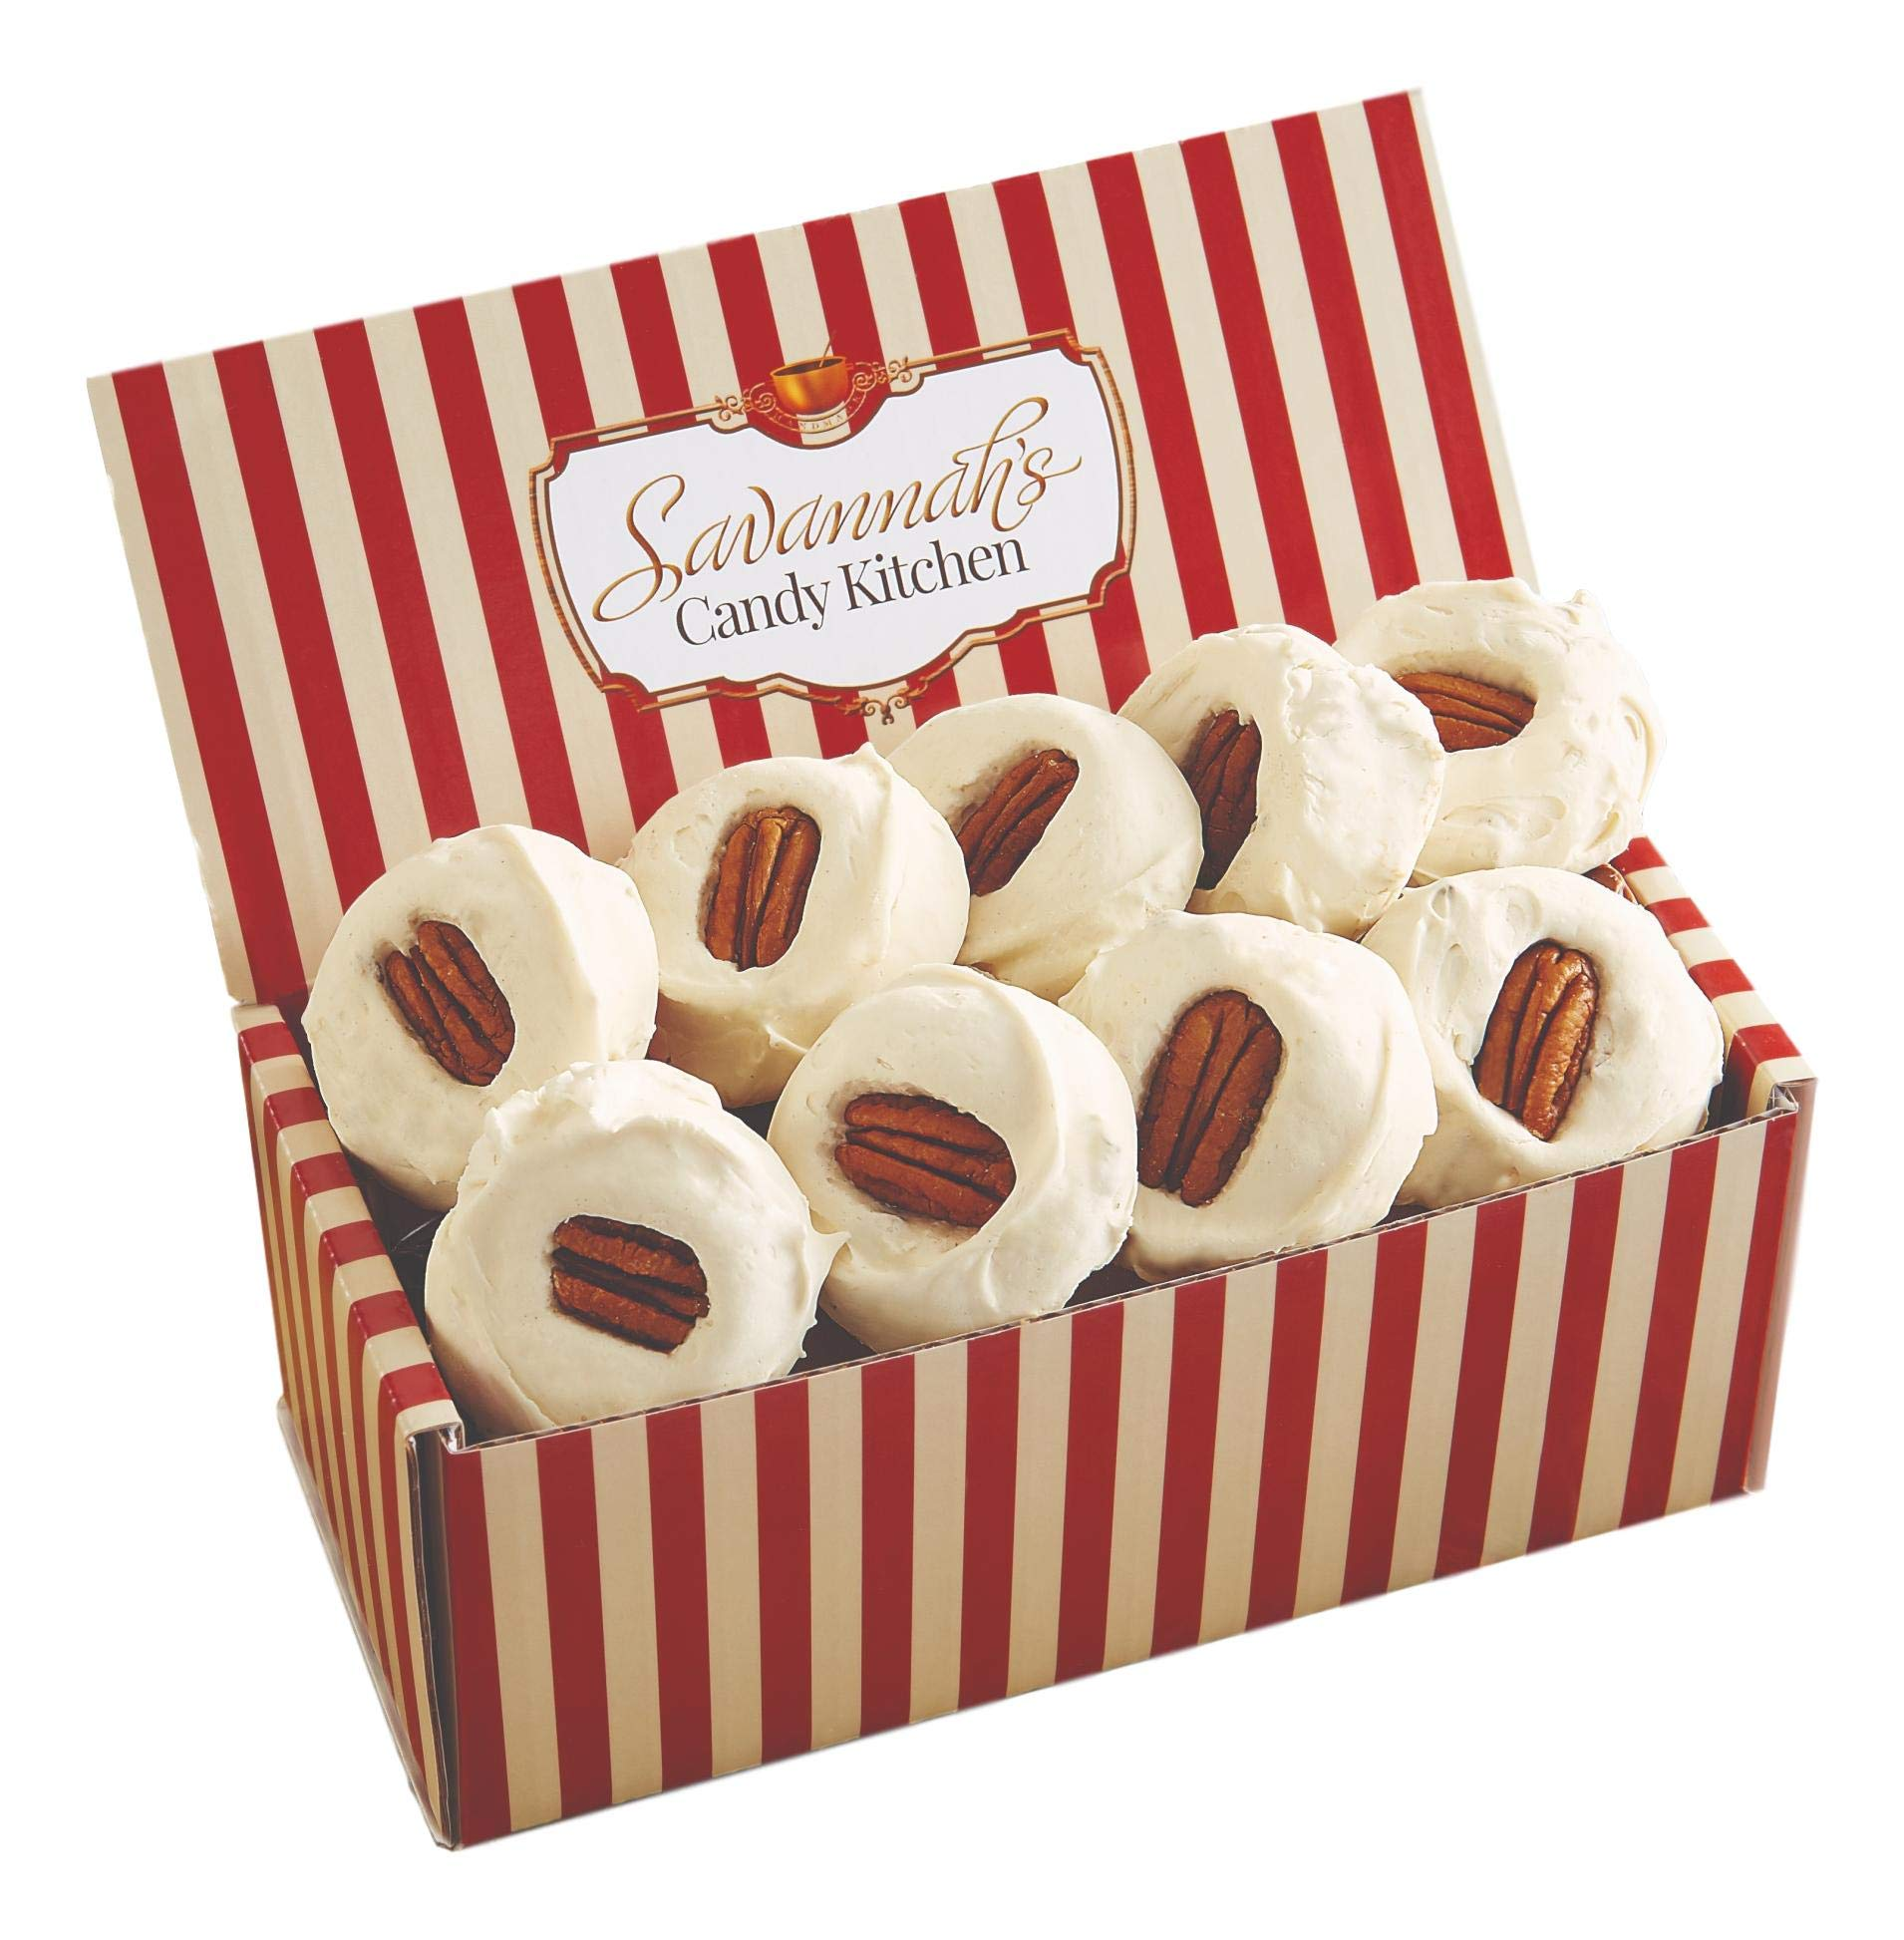 Savannah's Candy Kitchen | Handmade Small Batch Southern Pecan Divinity | Savannah's Signature Candy Gift Boxes (18) by Savannah's Candy Kitchen